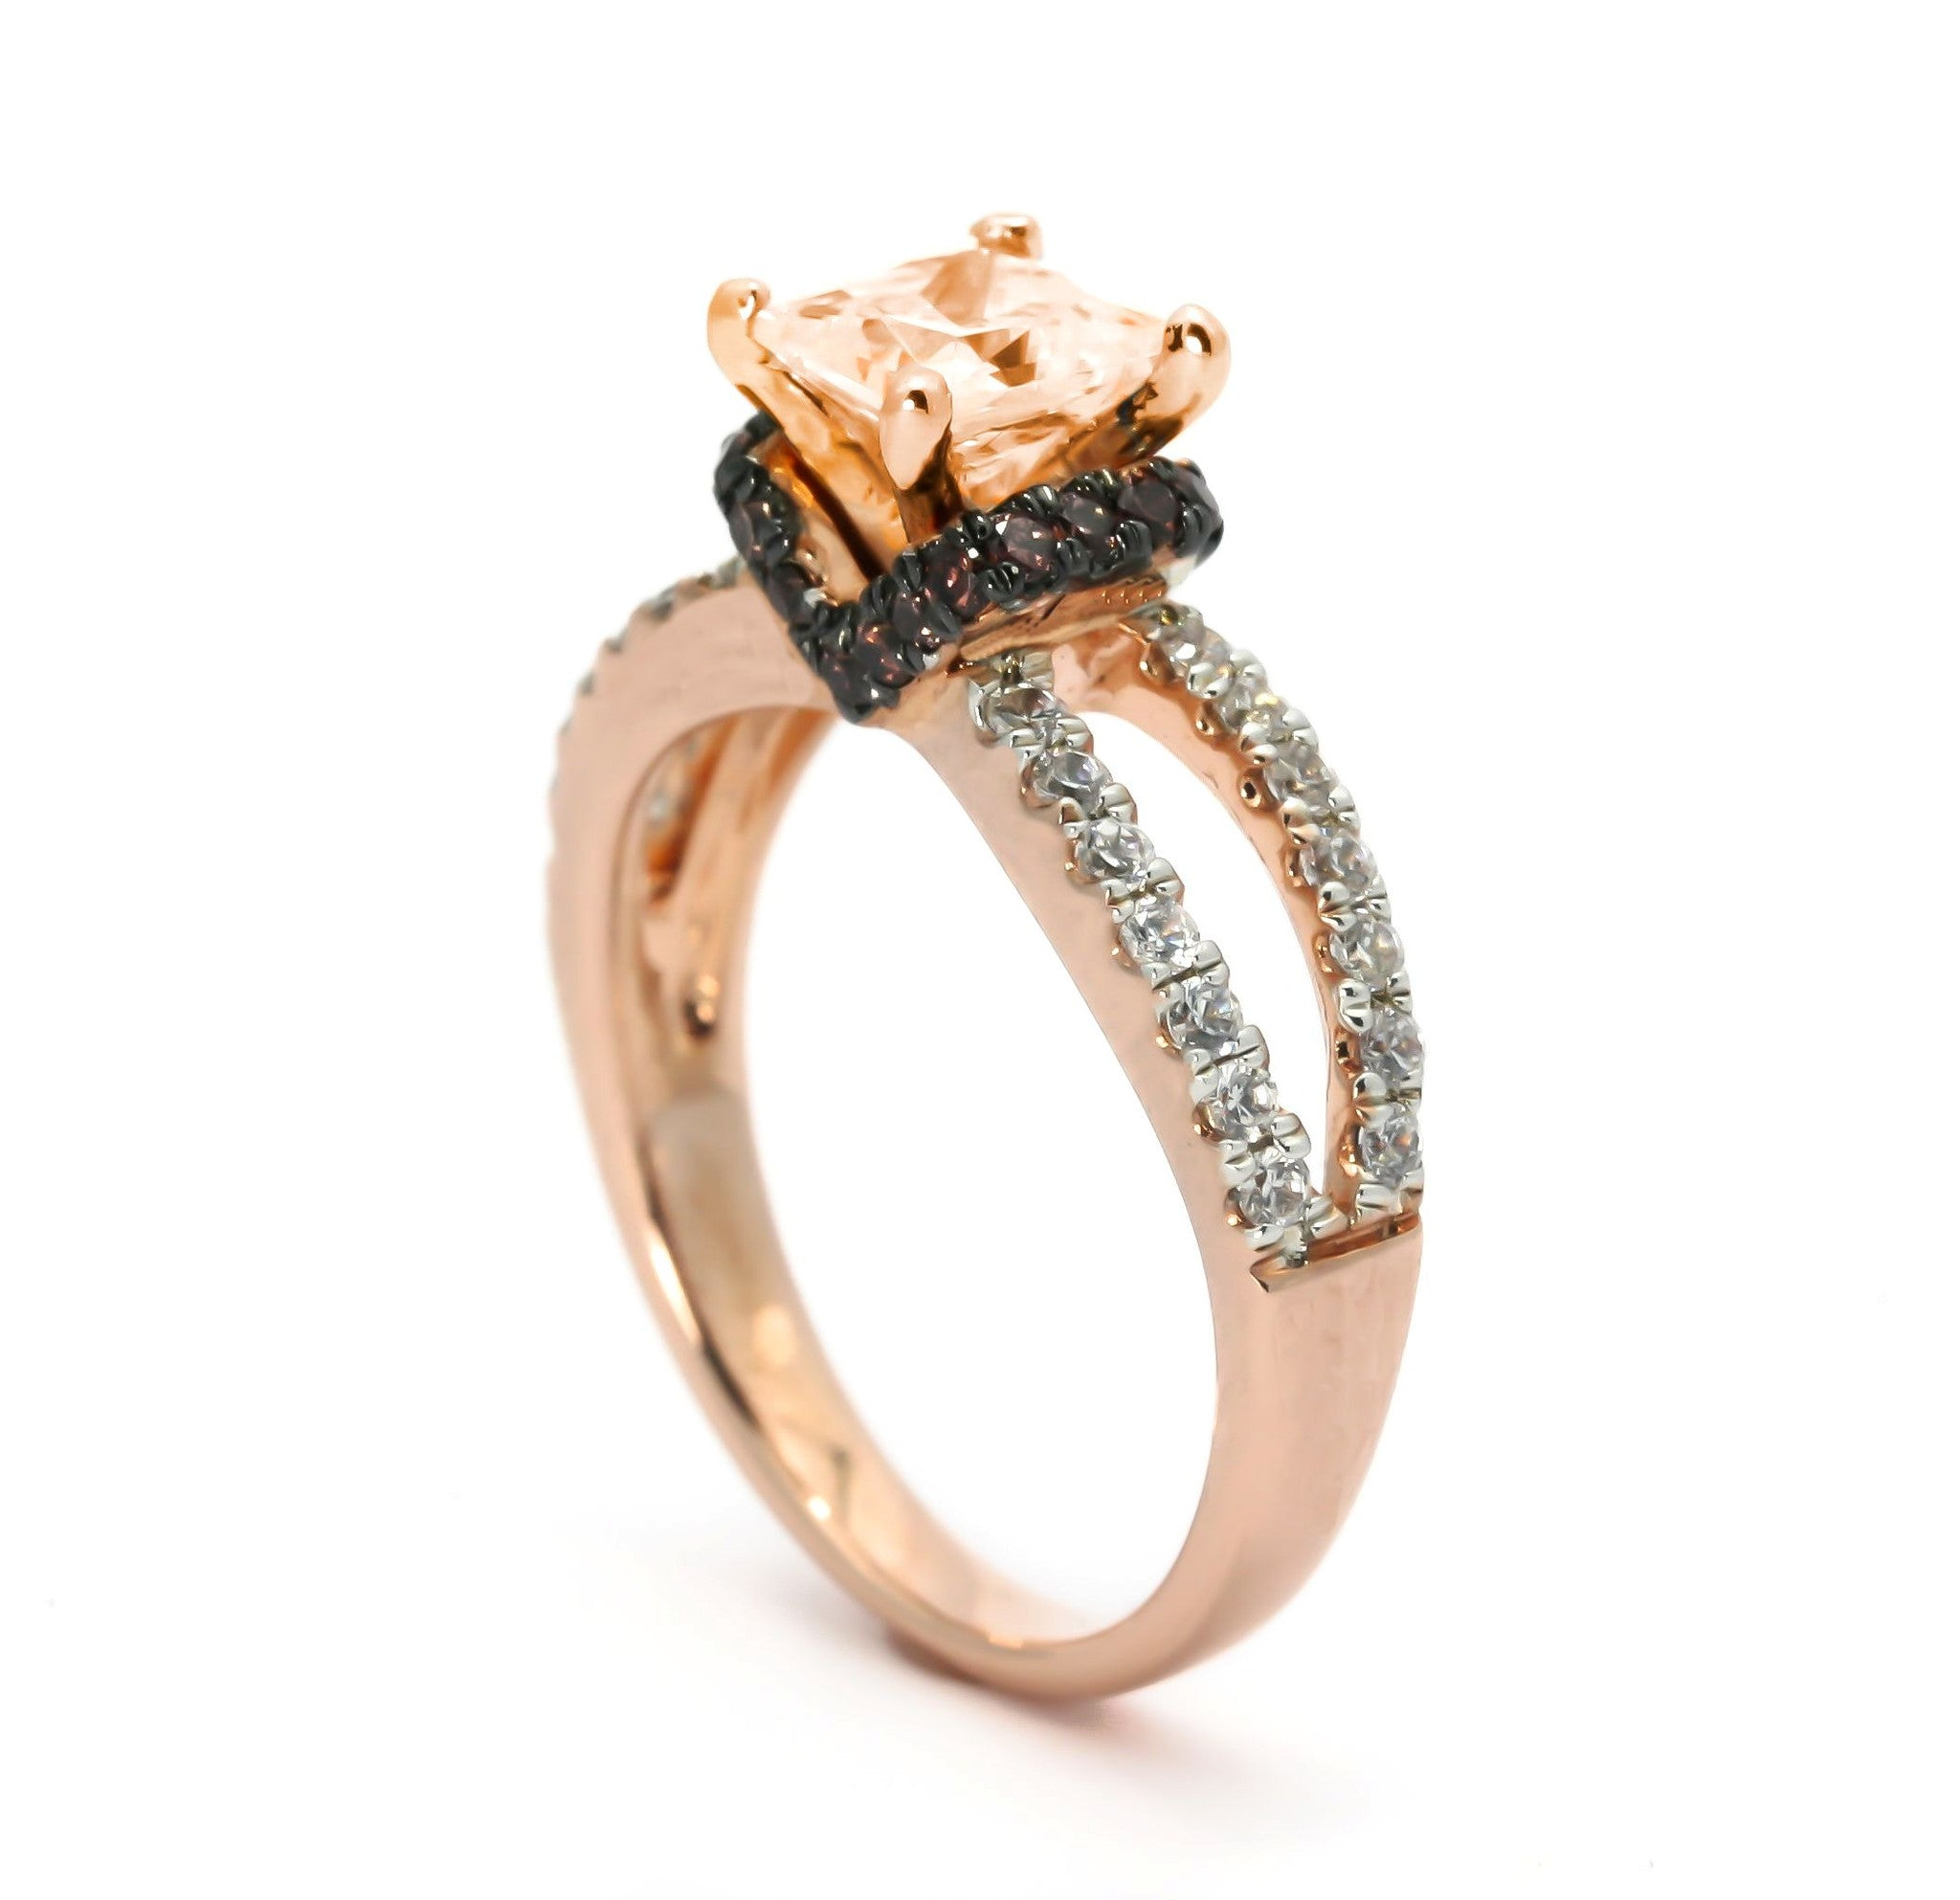 Unique 1 Carat Princess Cut Morganite Floating Halo Rose Gold Engagement Ring, .52 Carat White & Fancy Brown Diamonds, Split Shank - MG94624